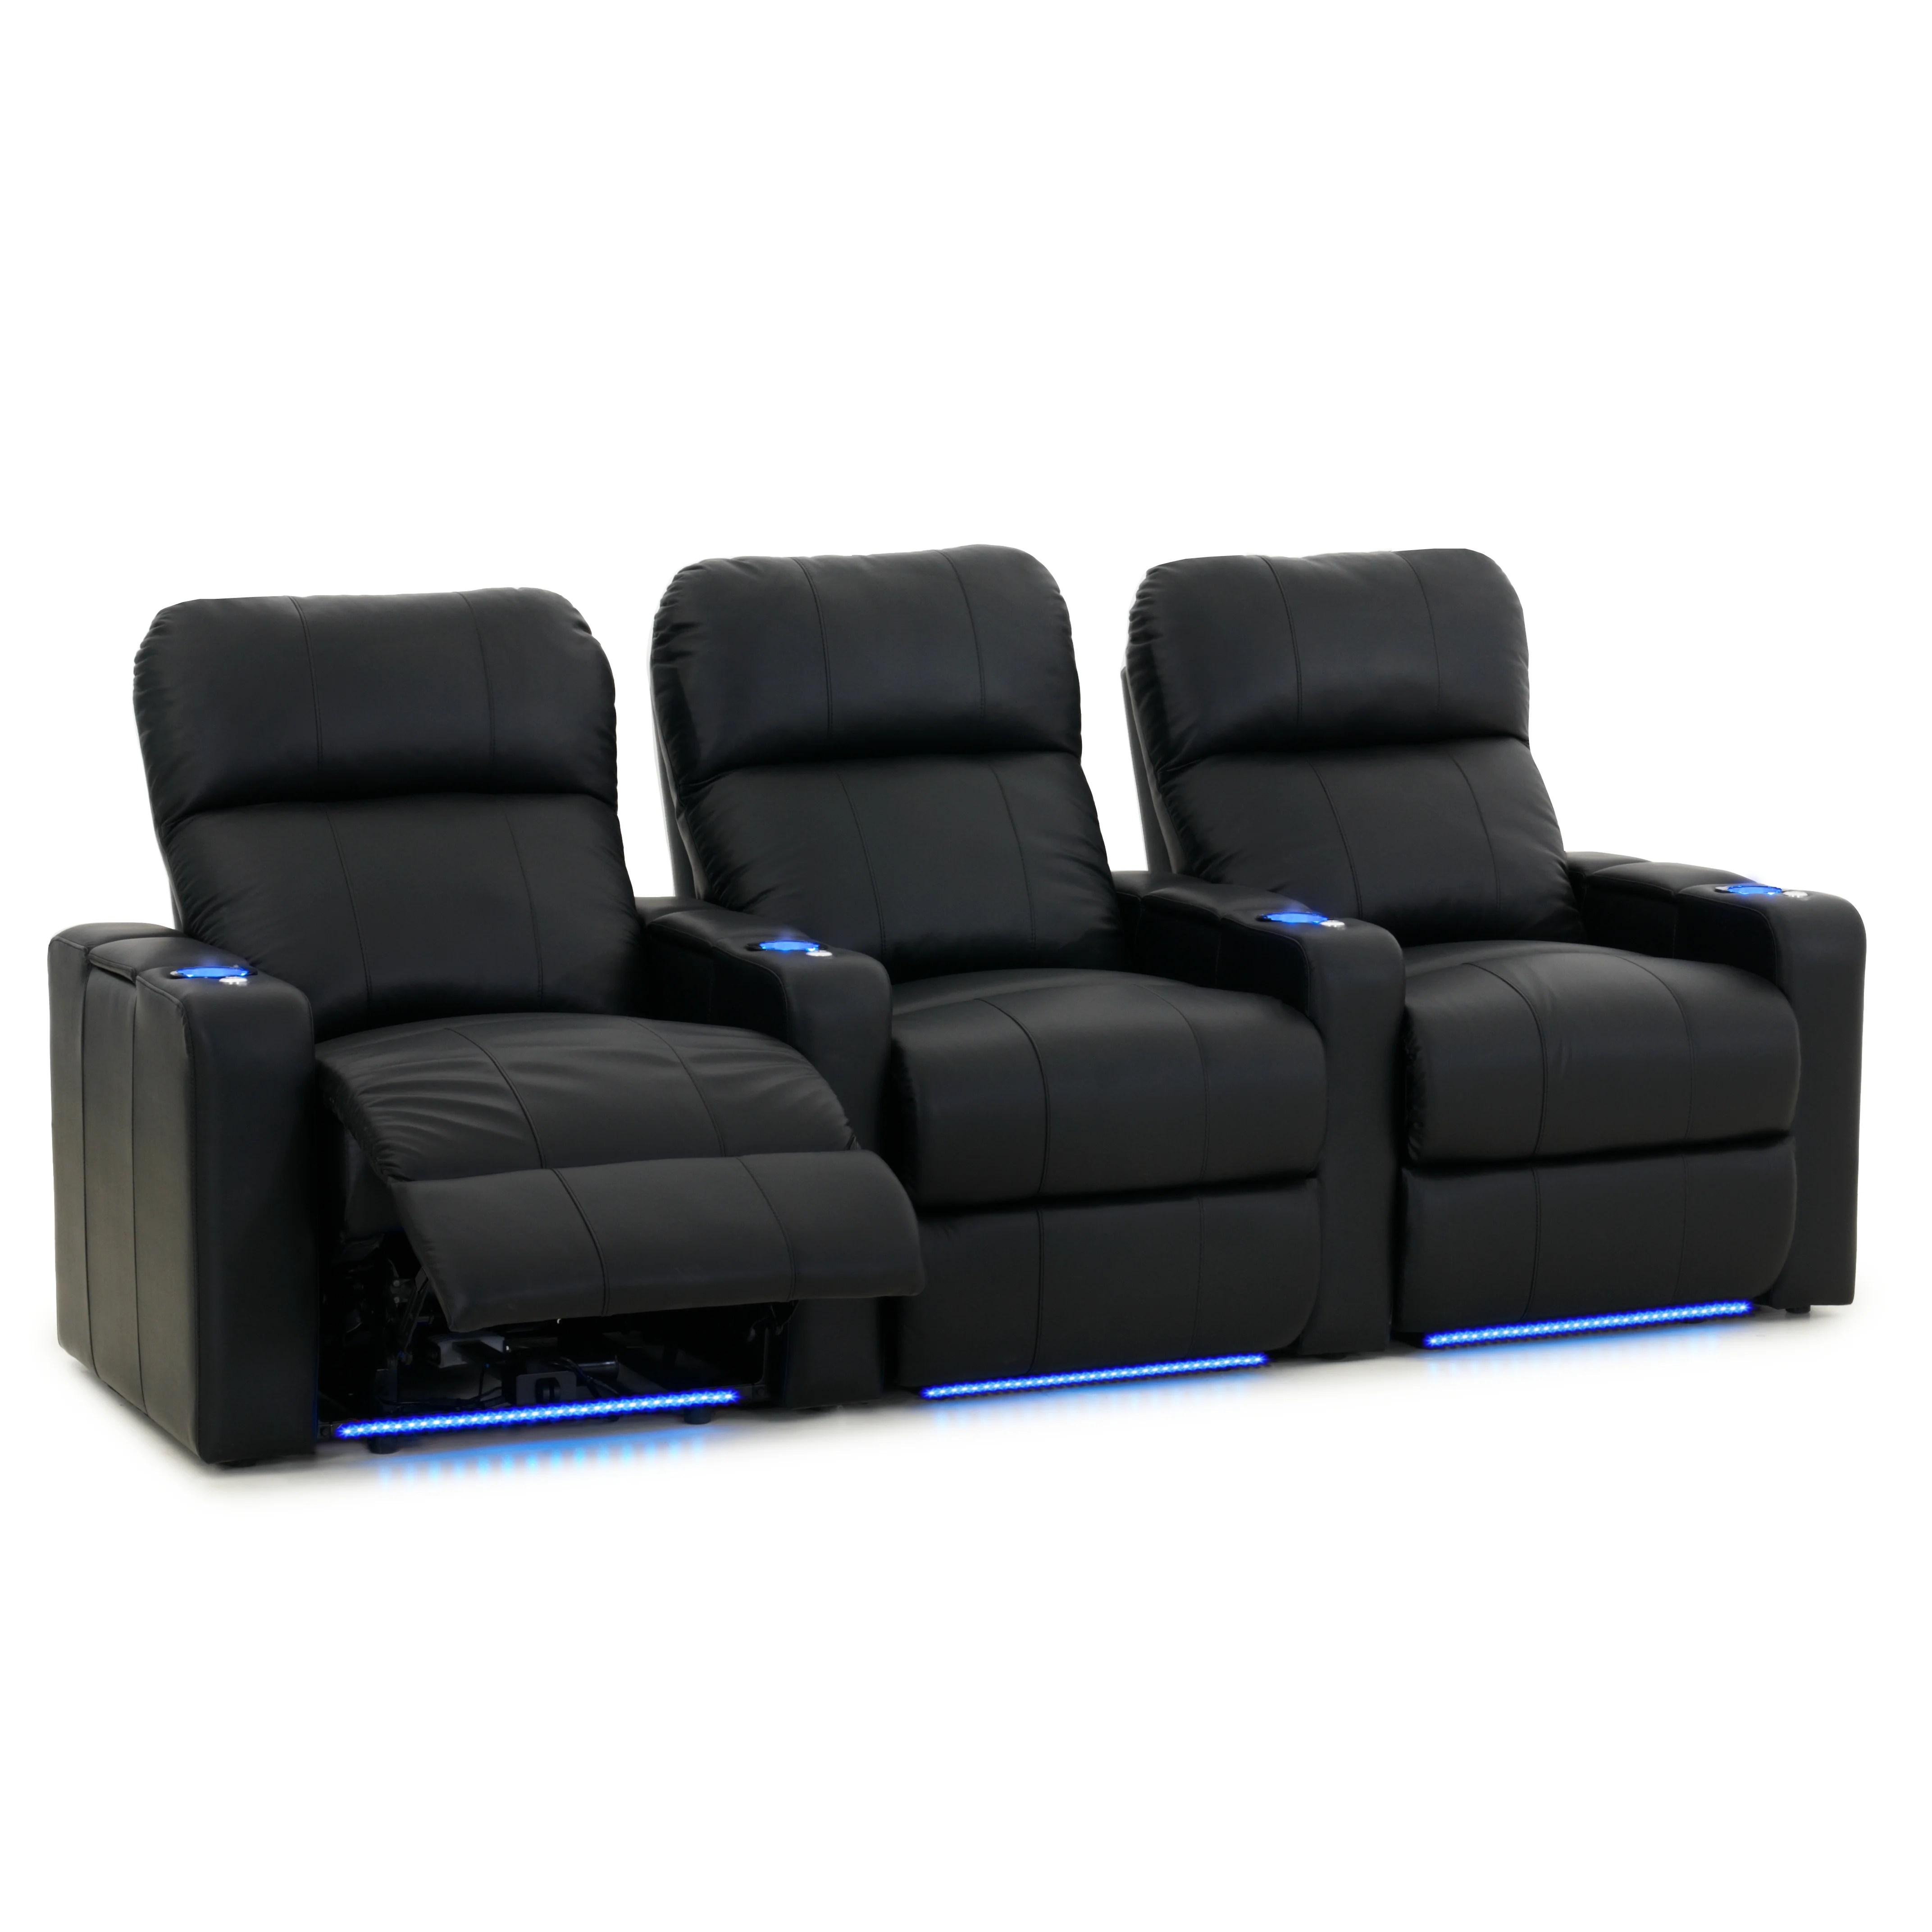 Furniture Row Recliners Qnwsinfo. Sofa Mart Spokane Valley Hmmi Us